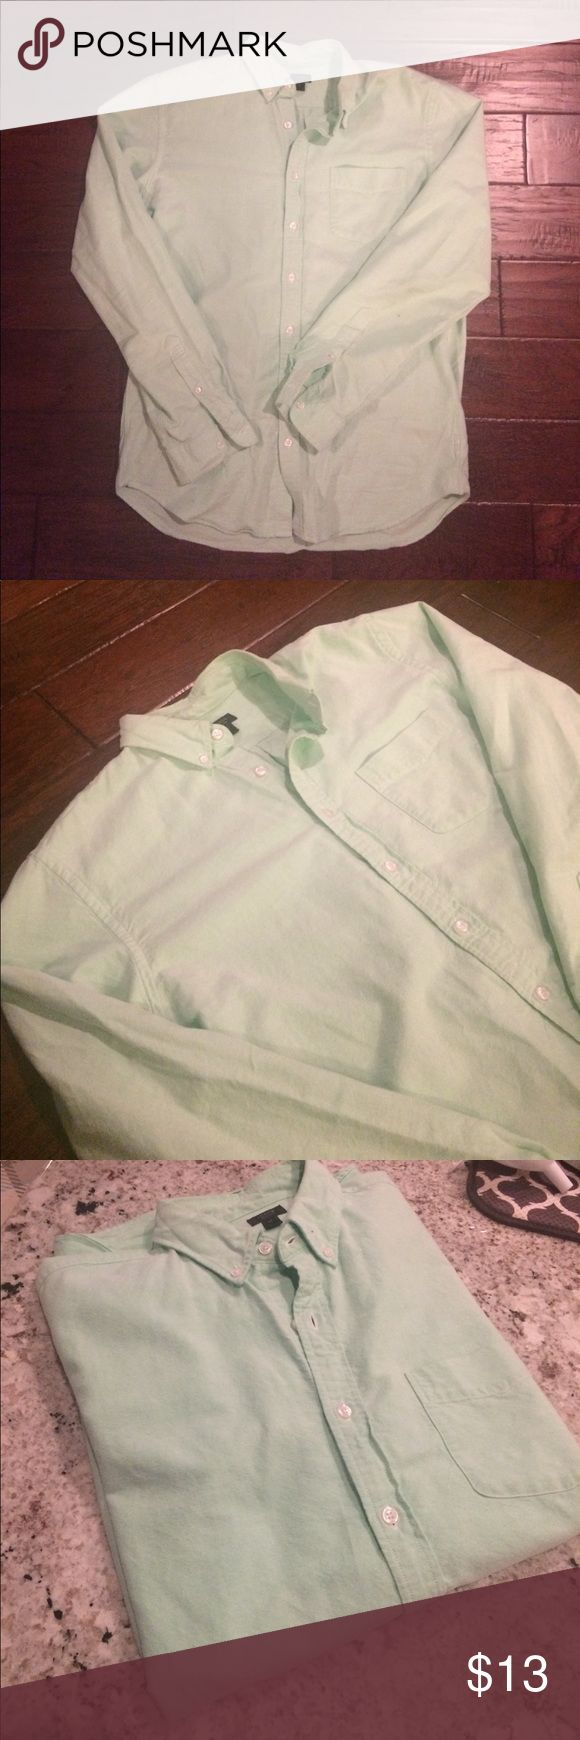 Men's J. Crew Oxford Shirt, Mint Green Men's J. Crew oxford shirt, mint green, size large tall, 100% cotton J. Crew Shirts Casual Button Down Shirts